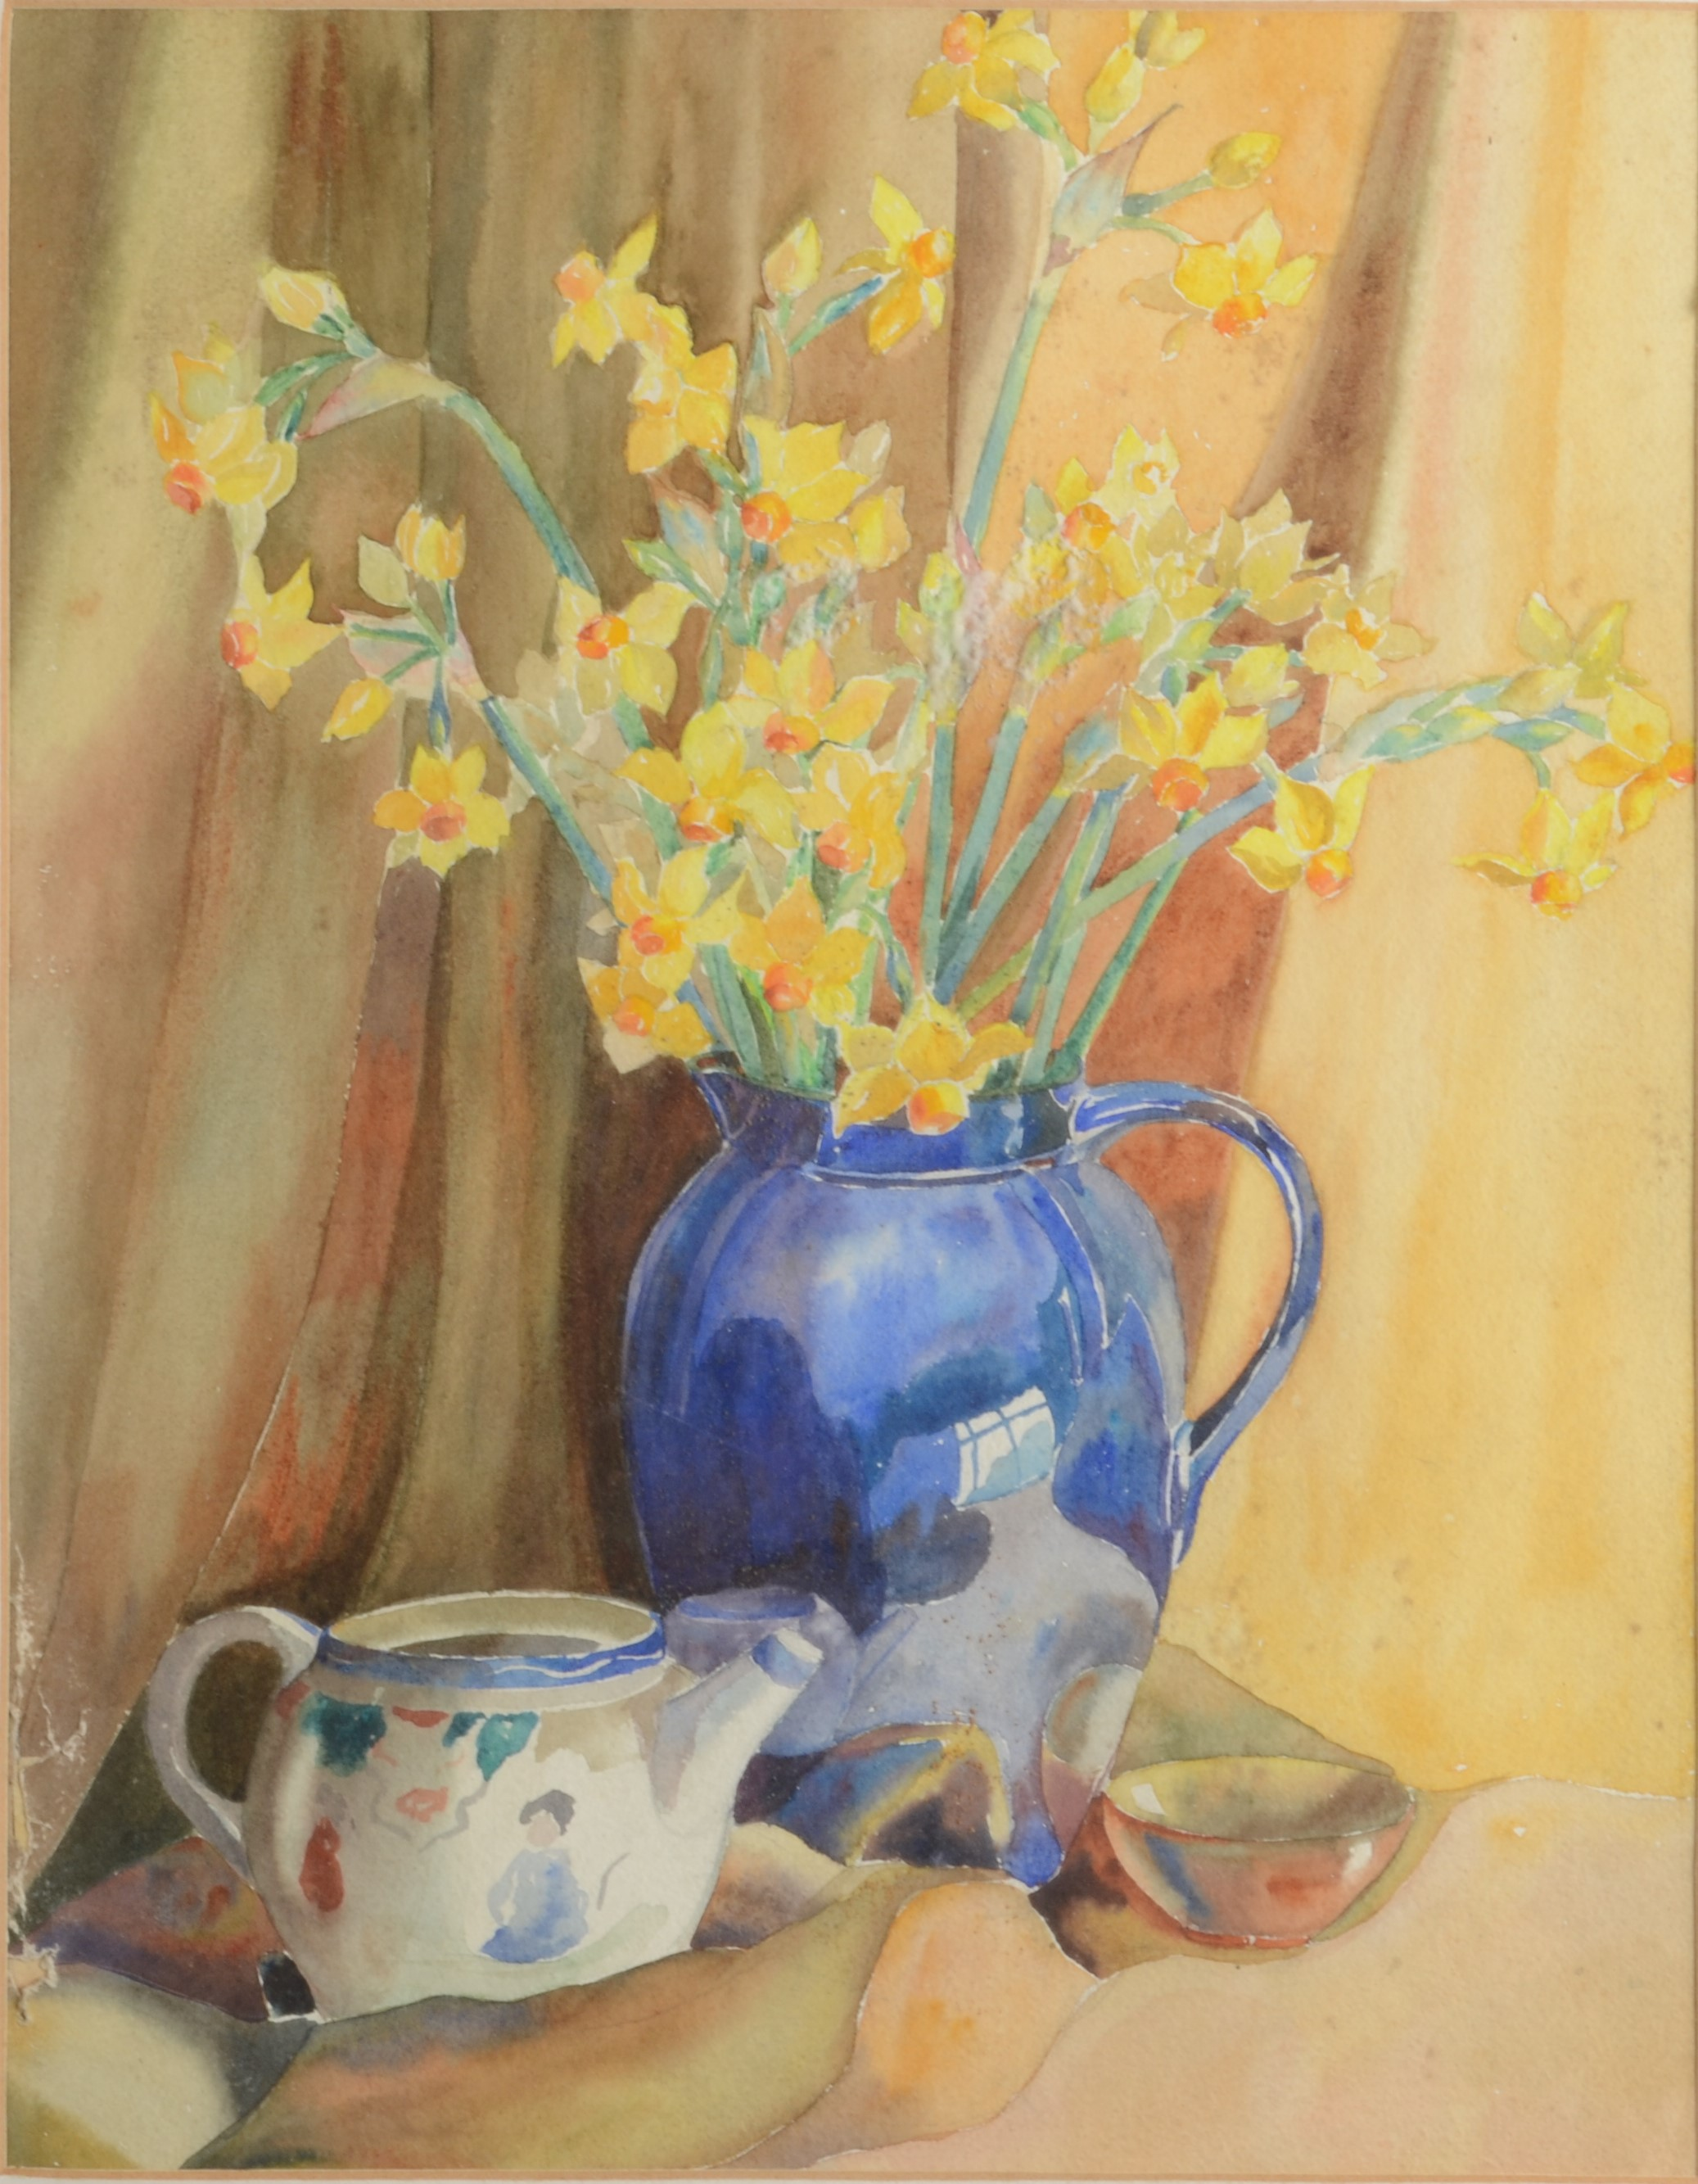 Lot 24 - MARION HOCKING Still Life With Daffodils Watercolour 44 x 35 cm